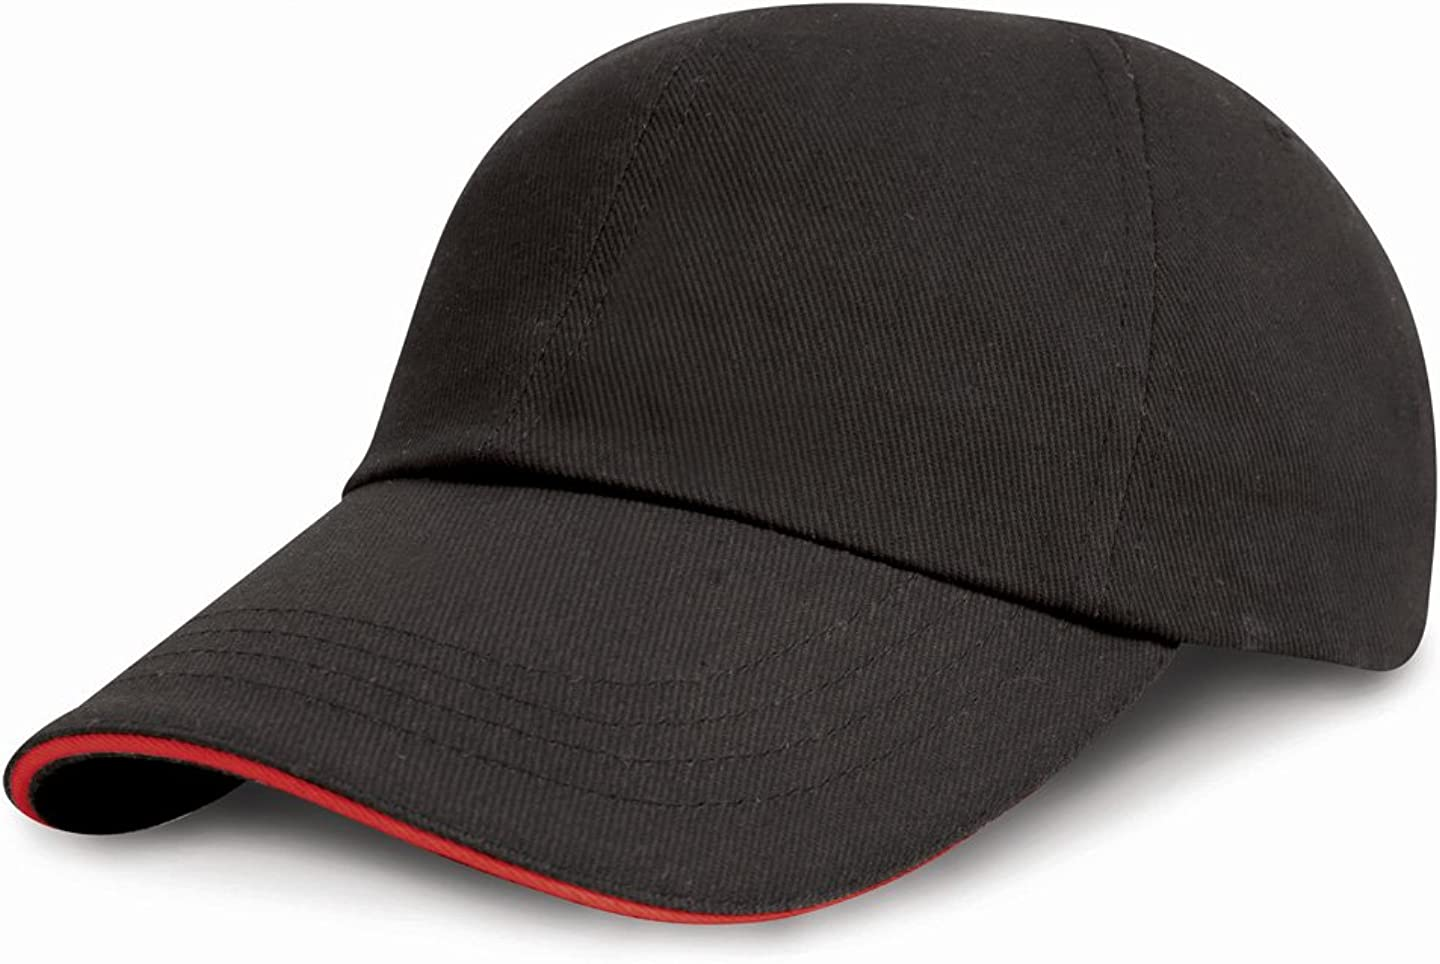 Mens-Low Profile Heavy Brushed Cotton Cap with Sandwich Peak-One Size